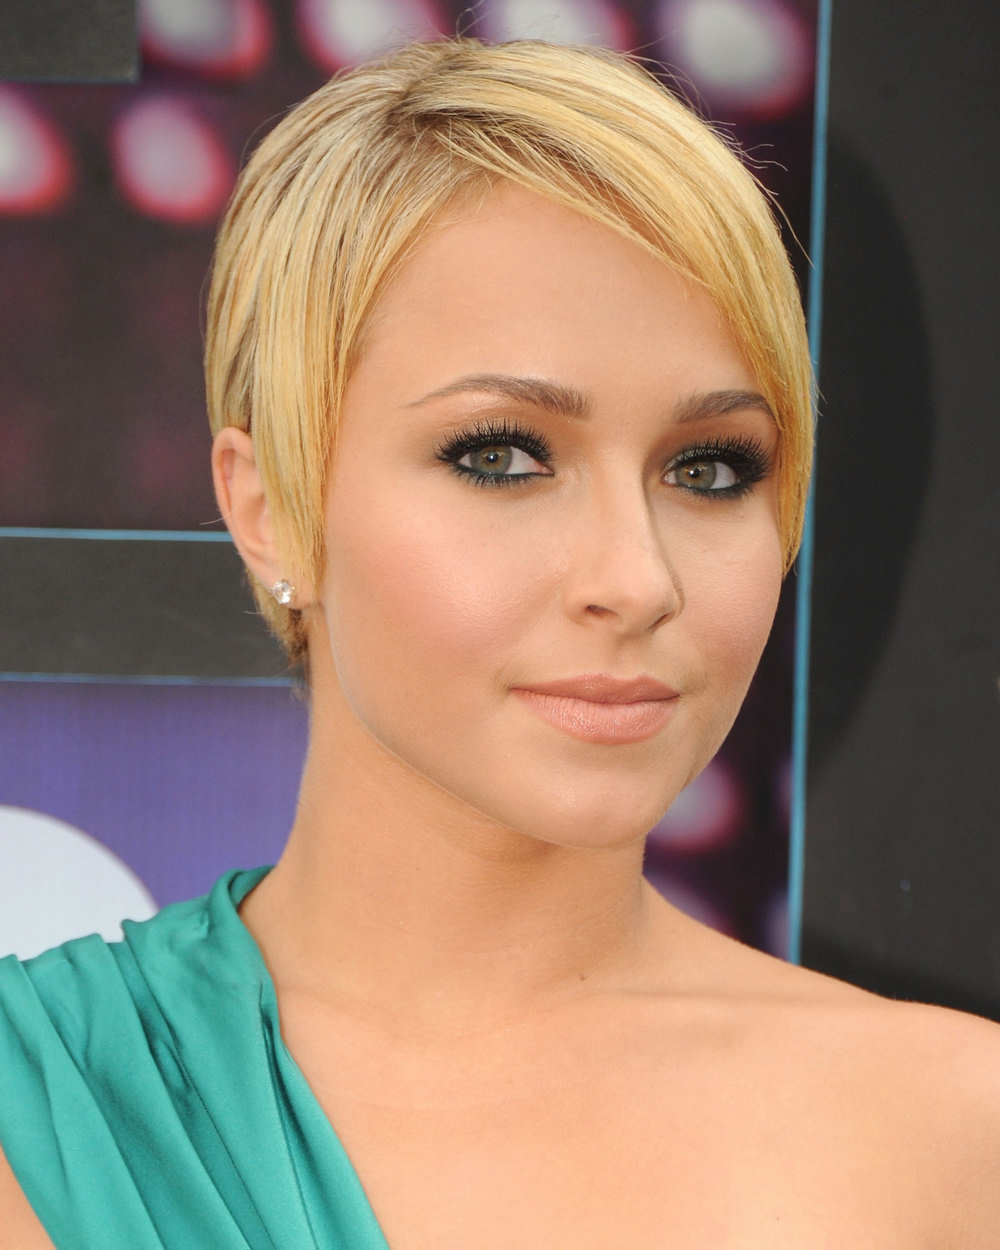 Hayden Panettiere at 2010 CMT Awards in Nashville - Hairstyles For Fat Faces And Double Chins